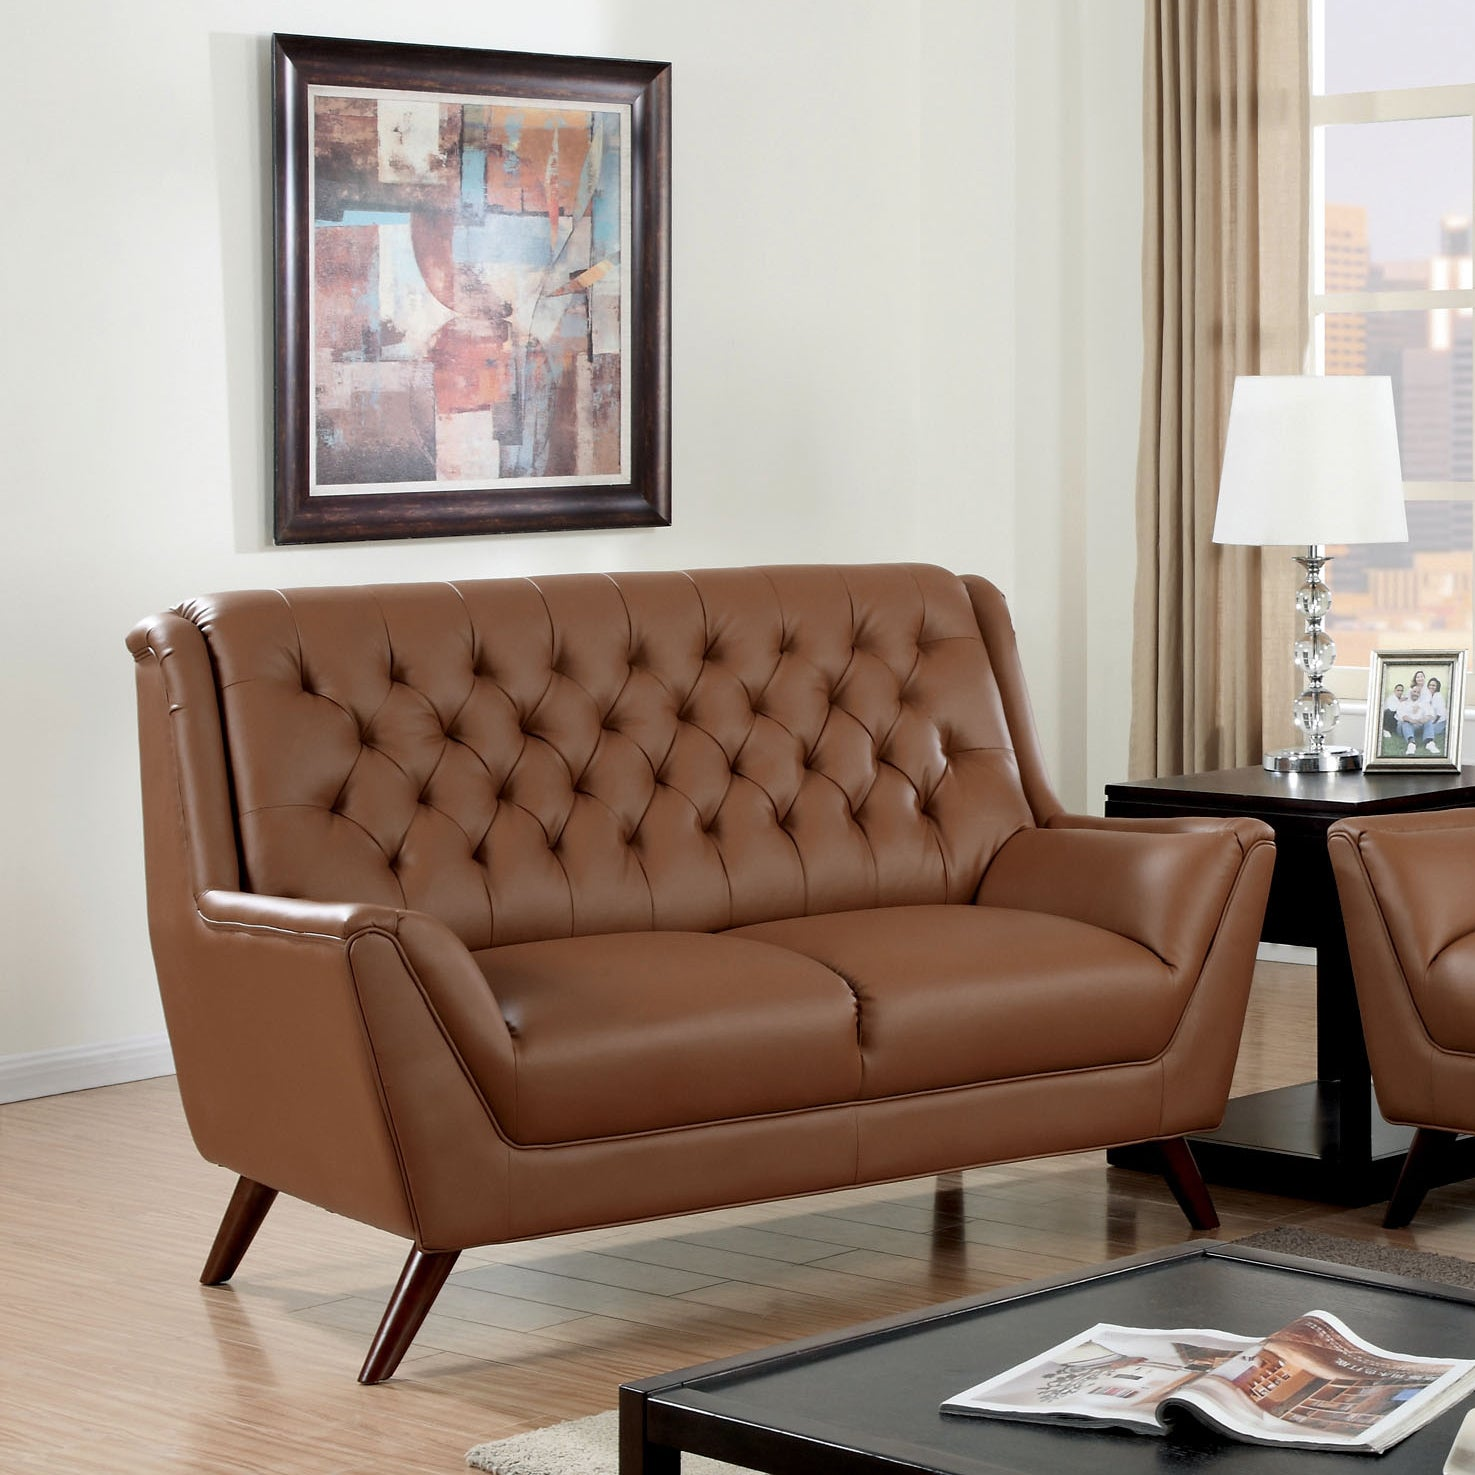 Furniture of america valentino mid century modern bonded leather loveseat